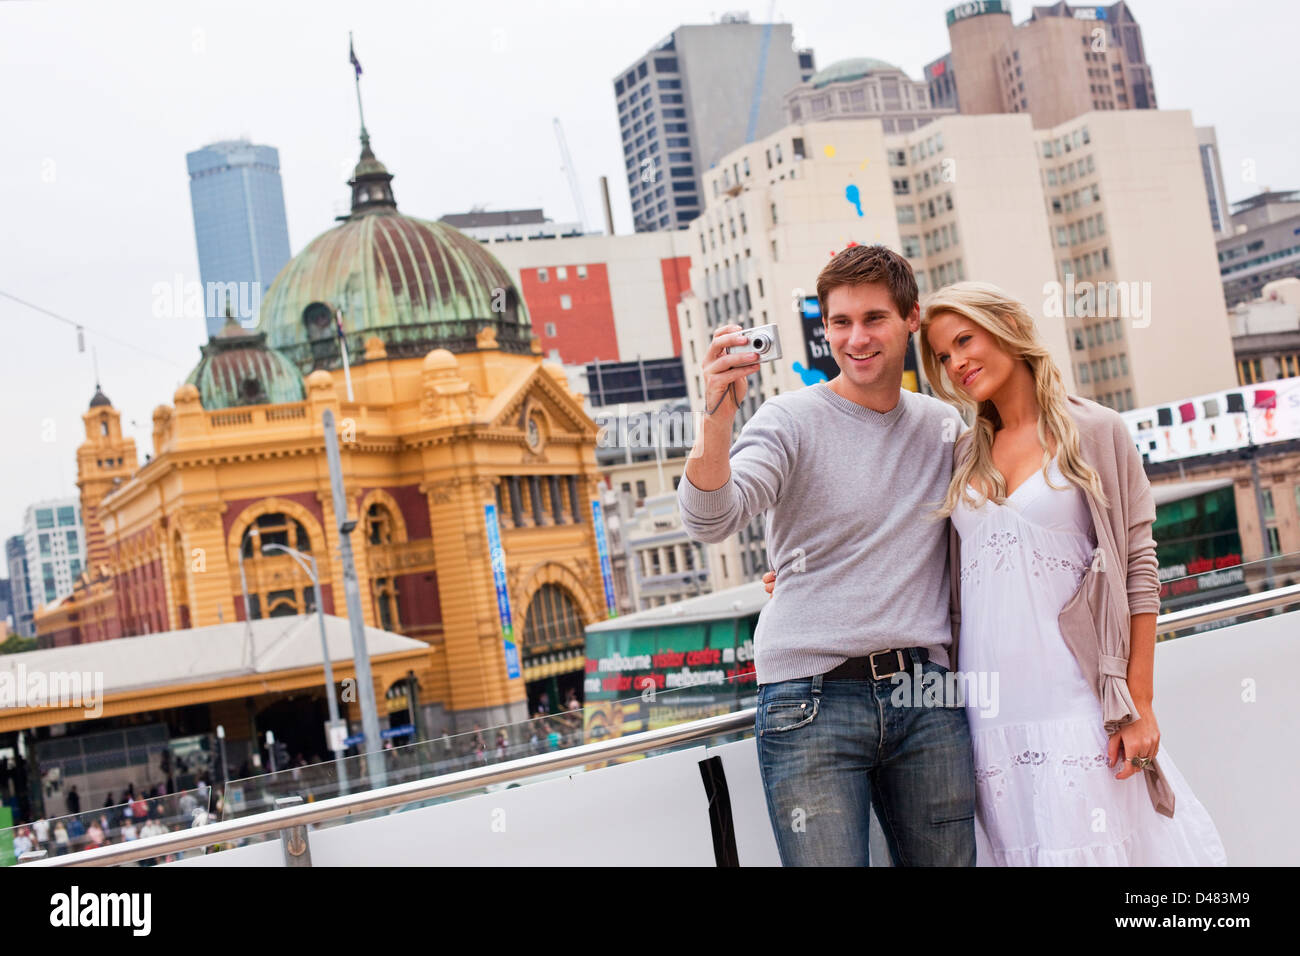 Young couple sightseeing in city, taking a picture. Federation Square, Melbourne, Victoria, Australia - Stock Image